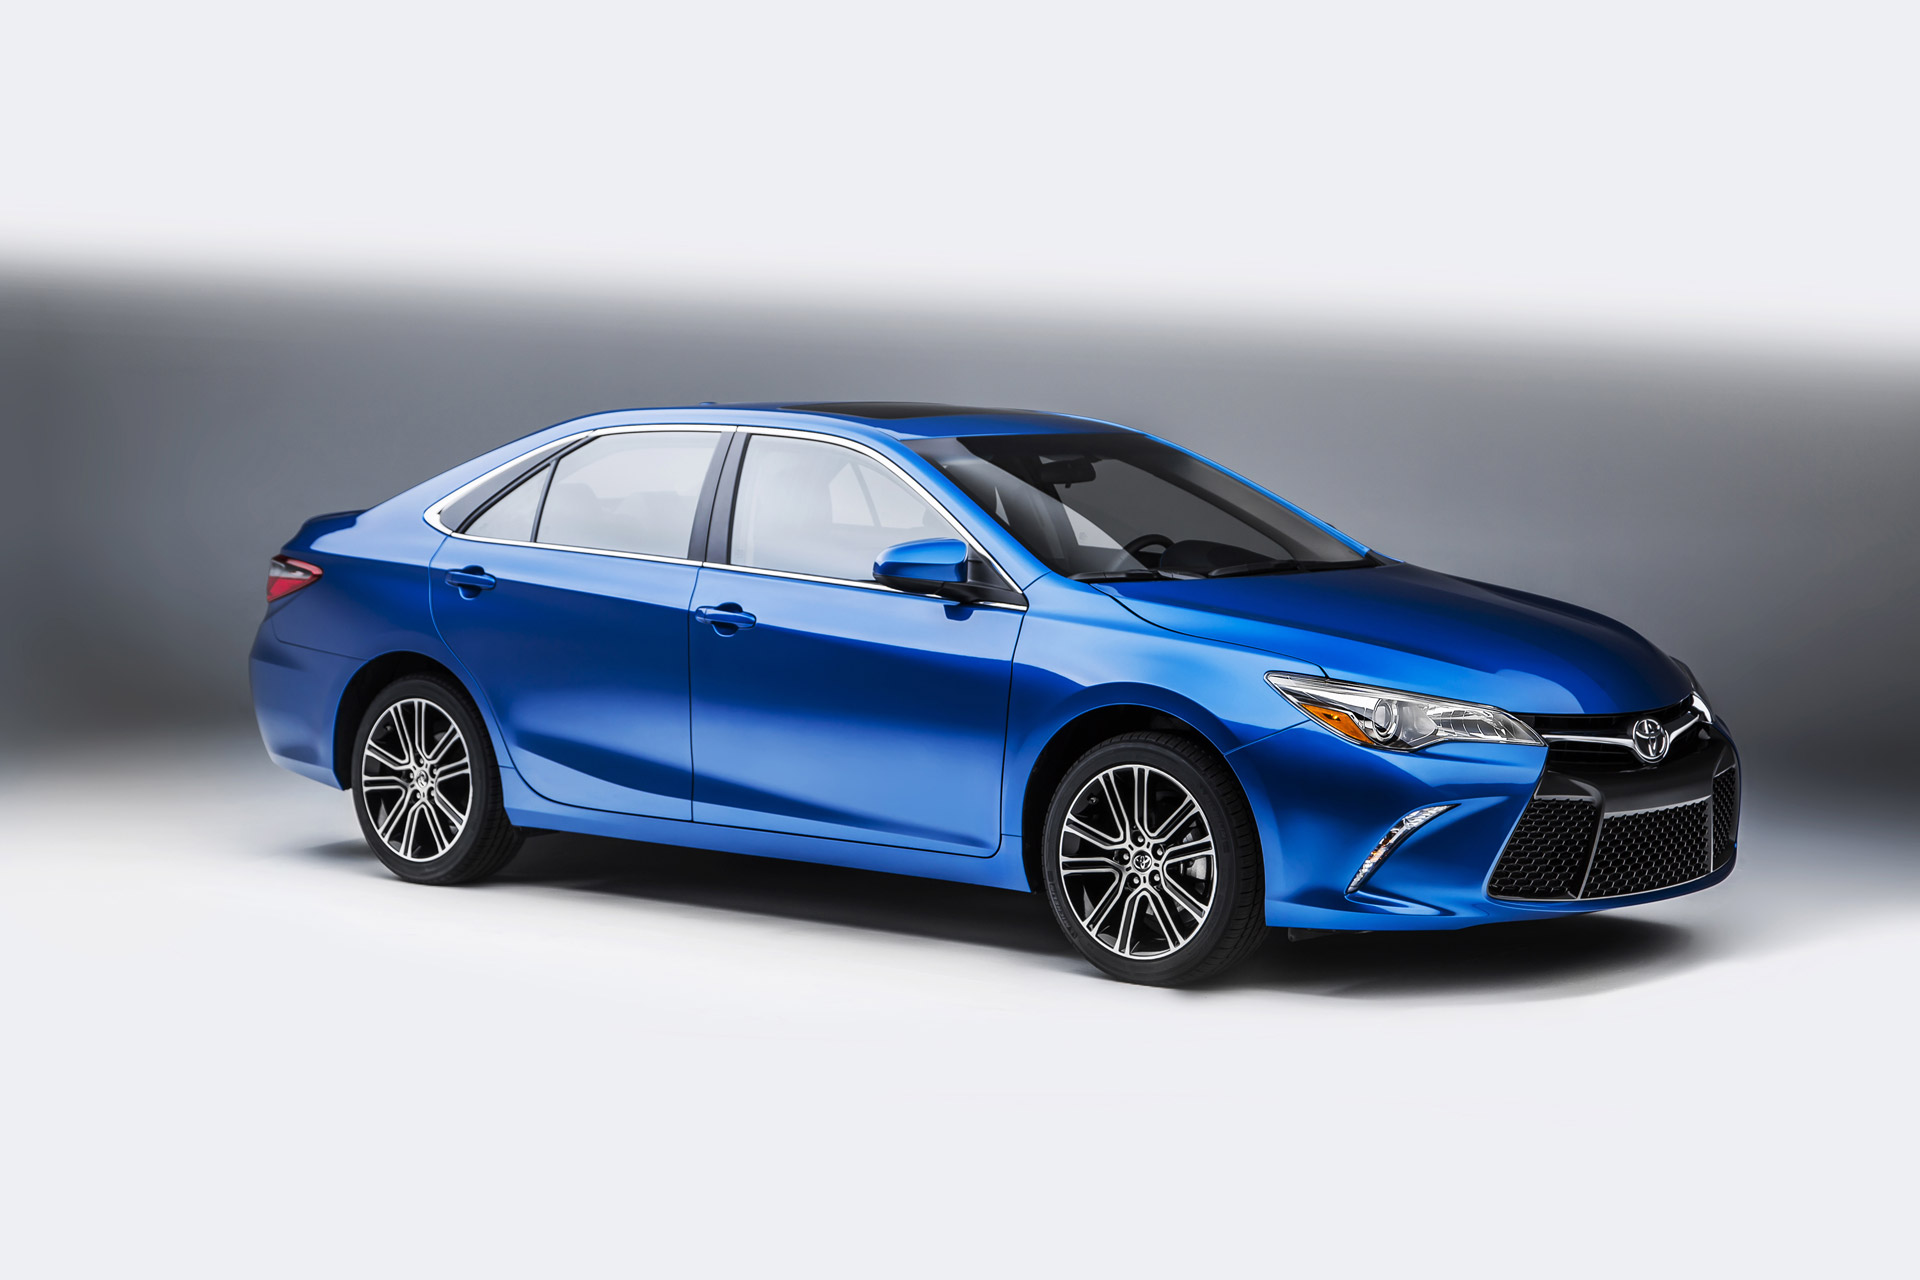 2016 Toyota Camry Features Review The Car Connection